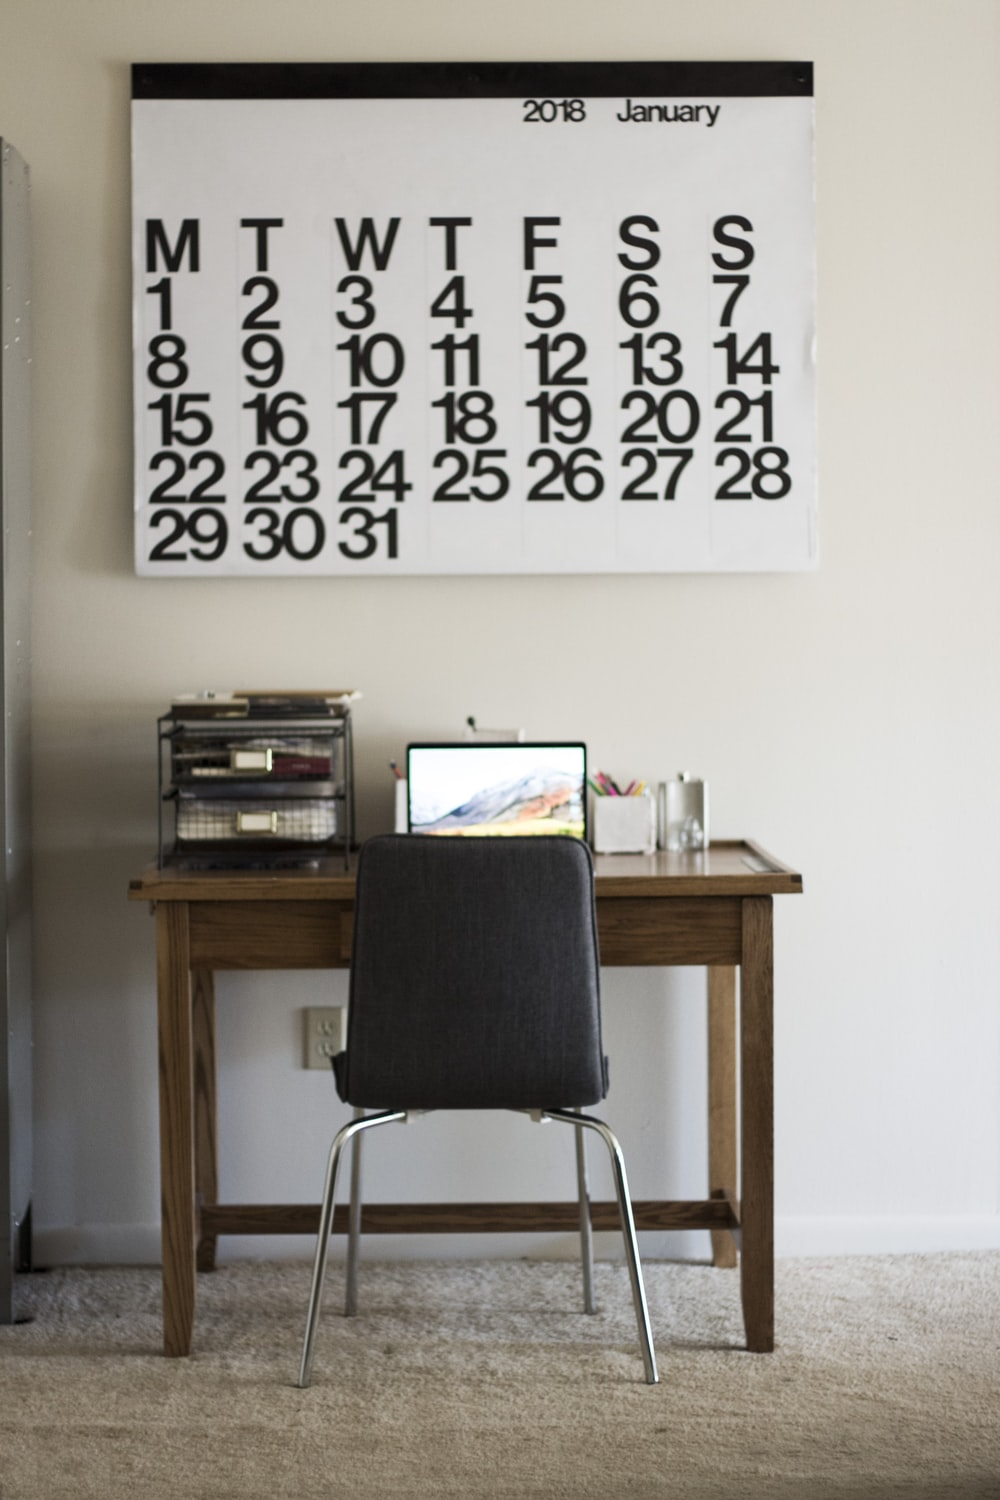 black chair in front of turned on laptop